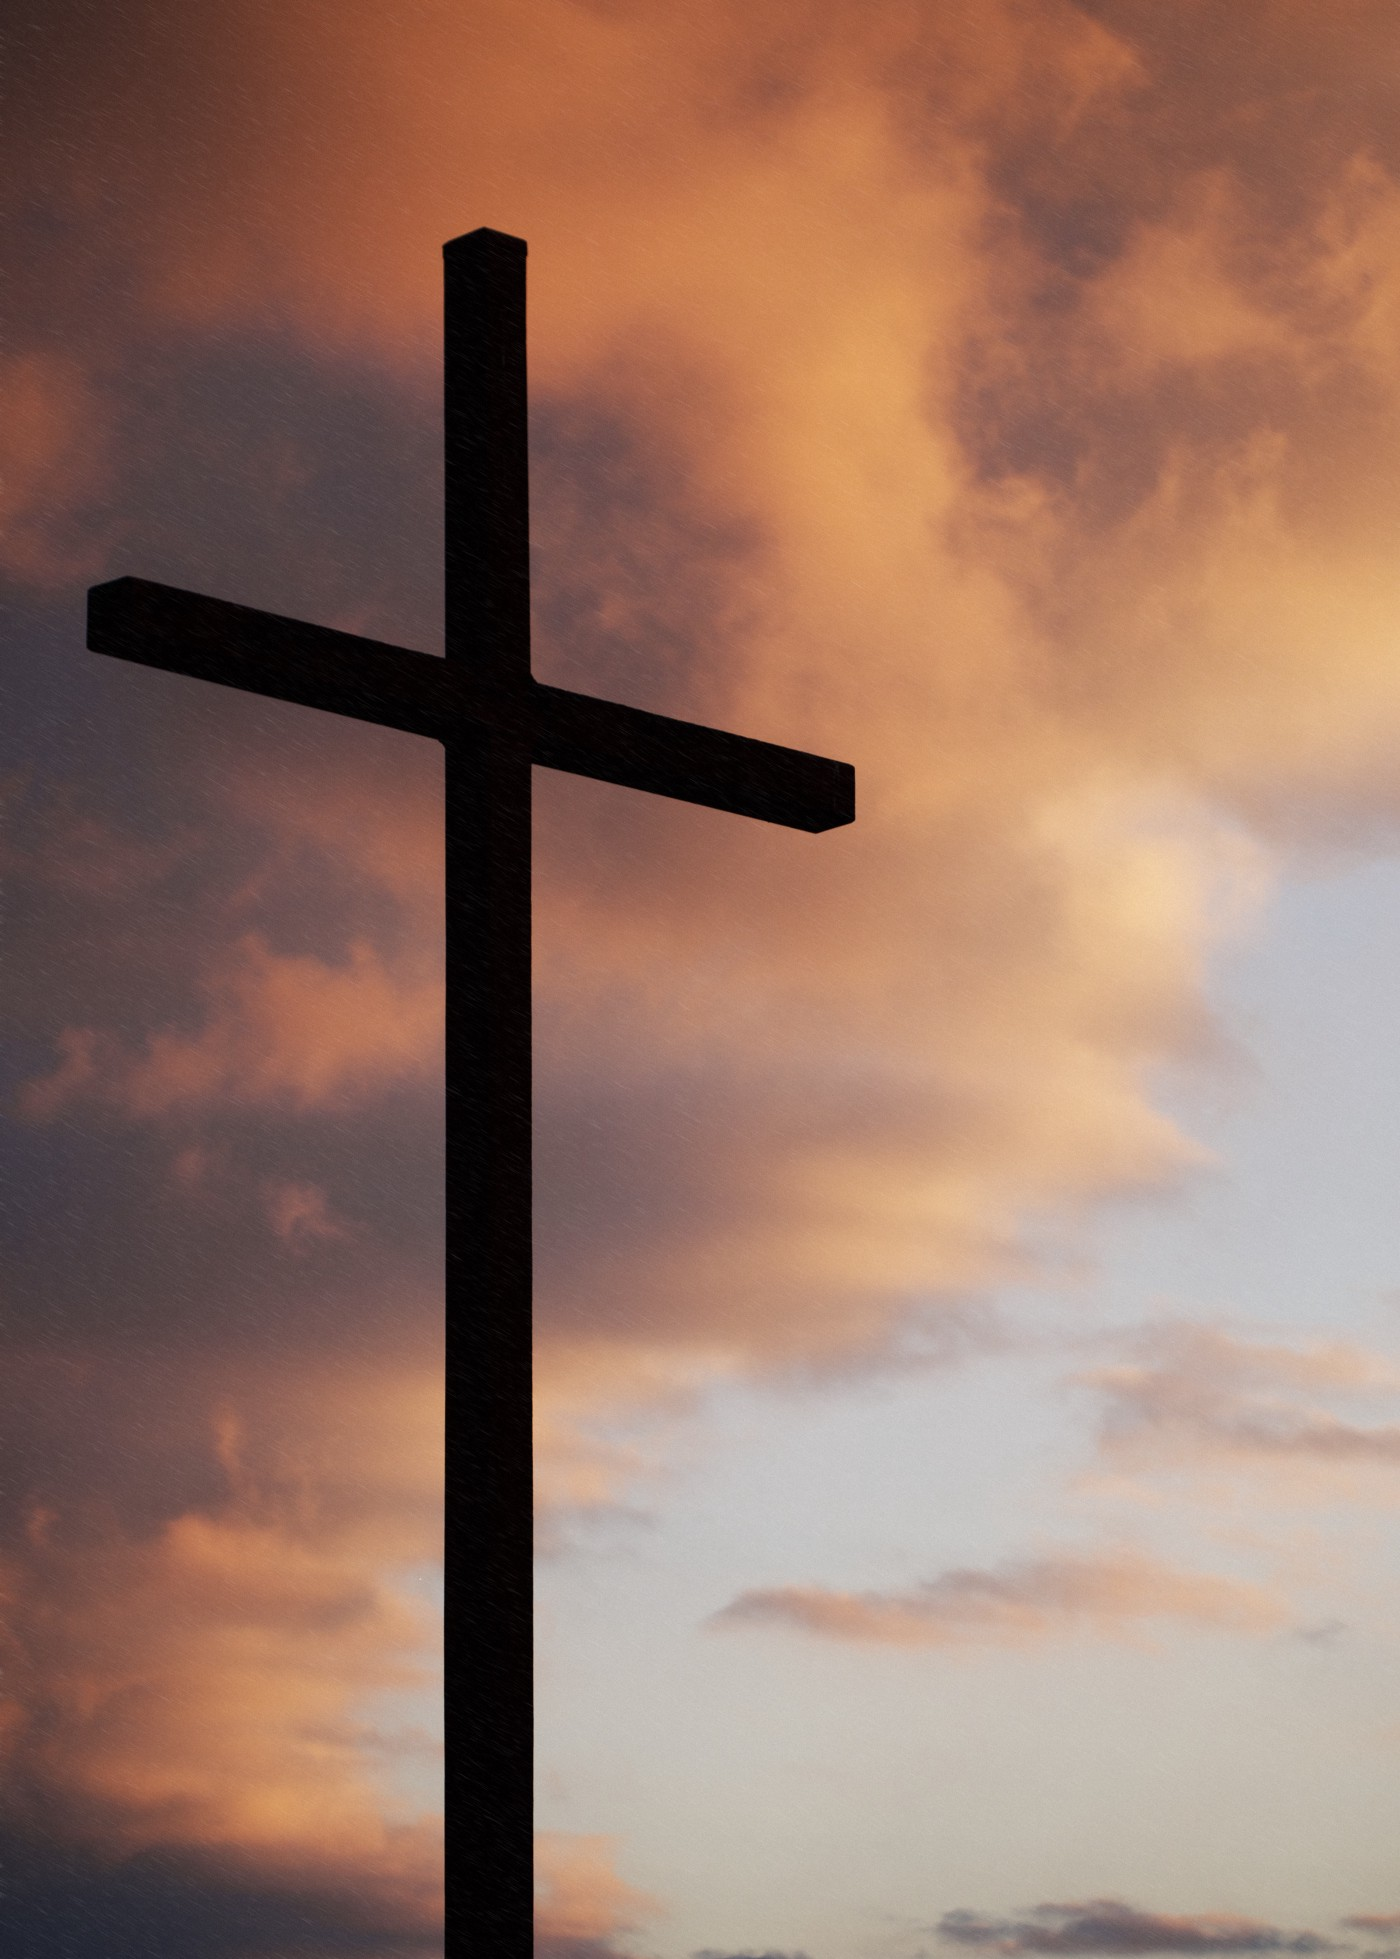 Backlit cross against peachy and gray sunset clouds